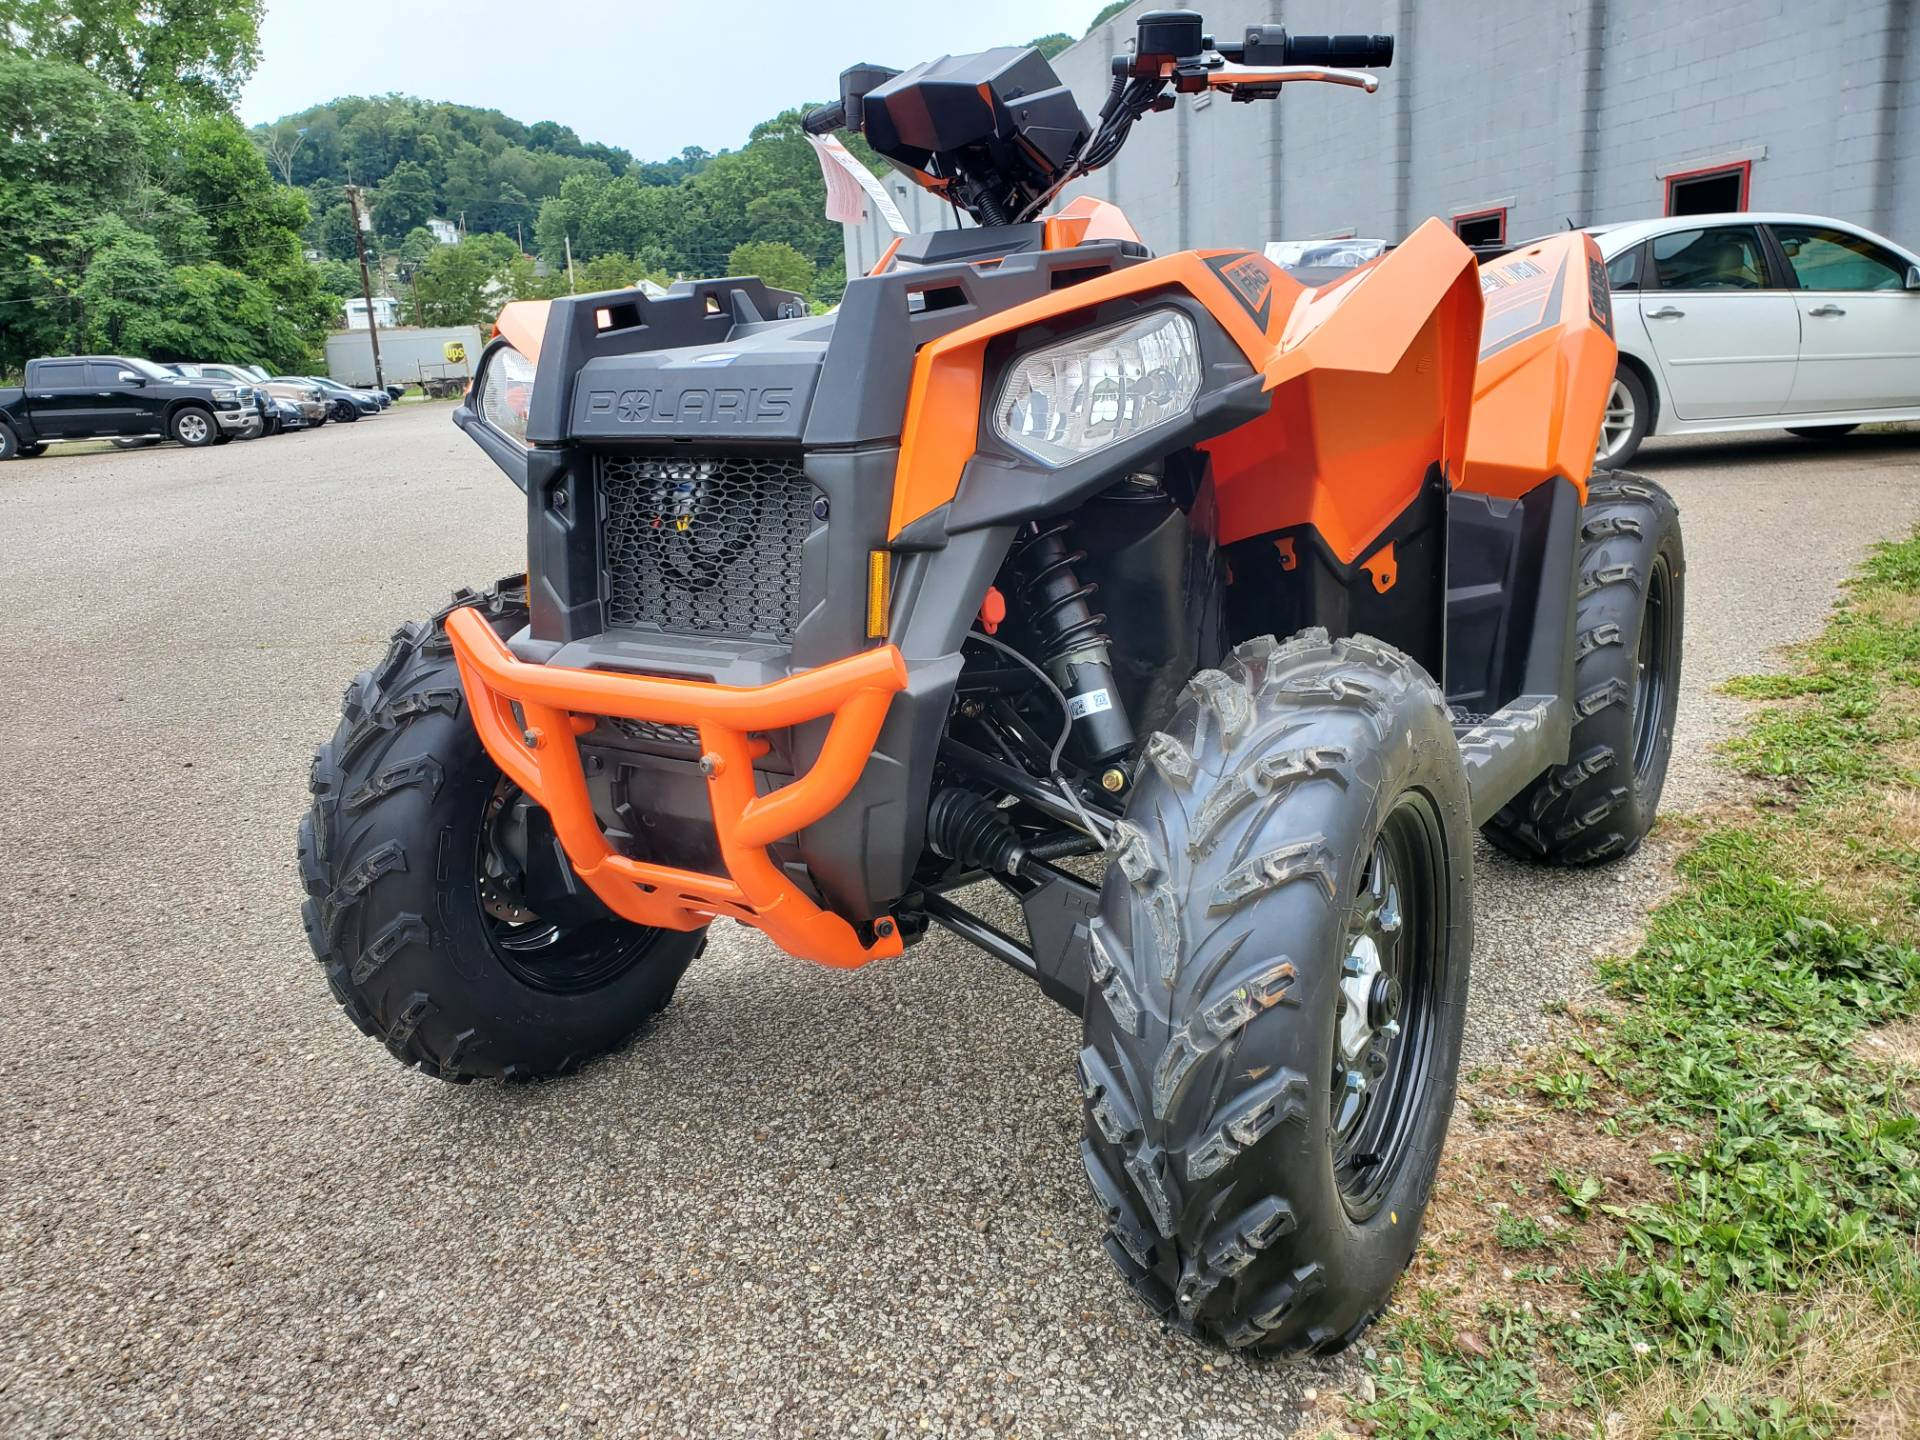 2020 Polaris Scrambler 850 in Brilliant, Ohio - Photo 4